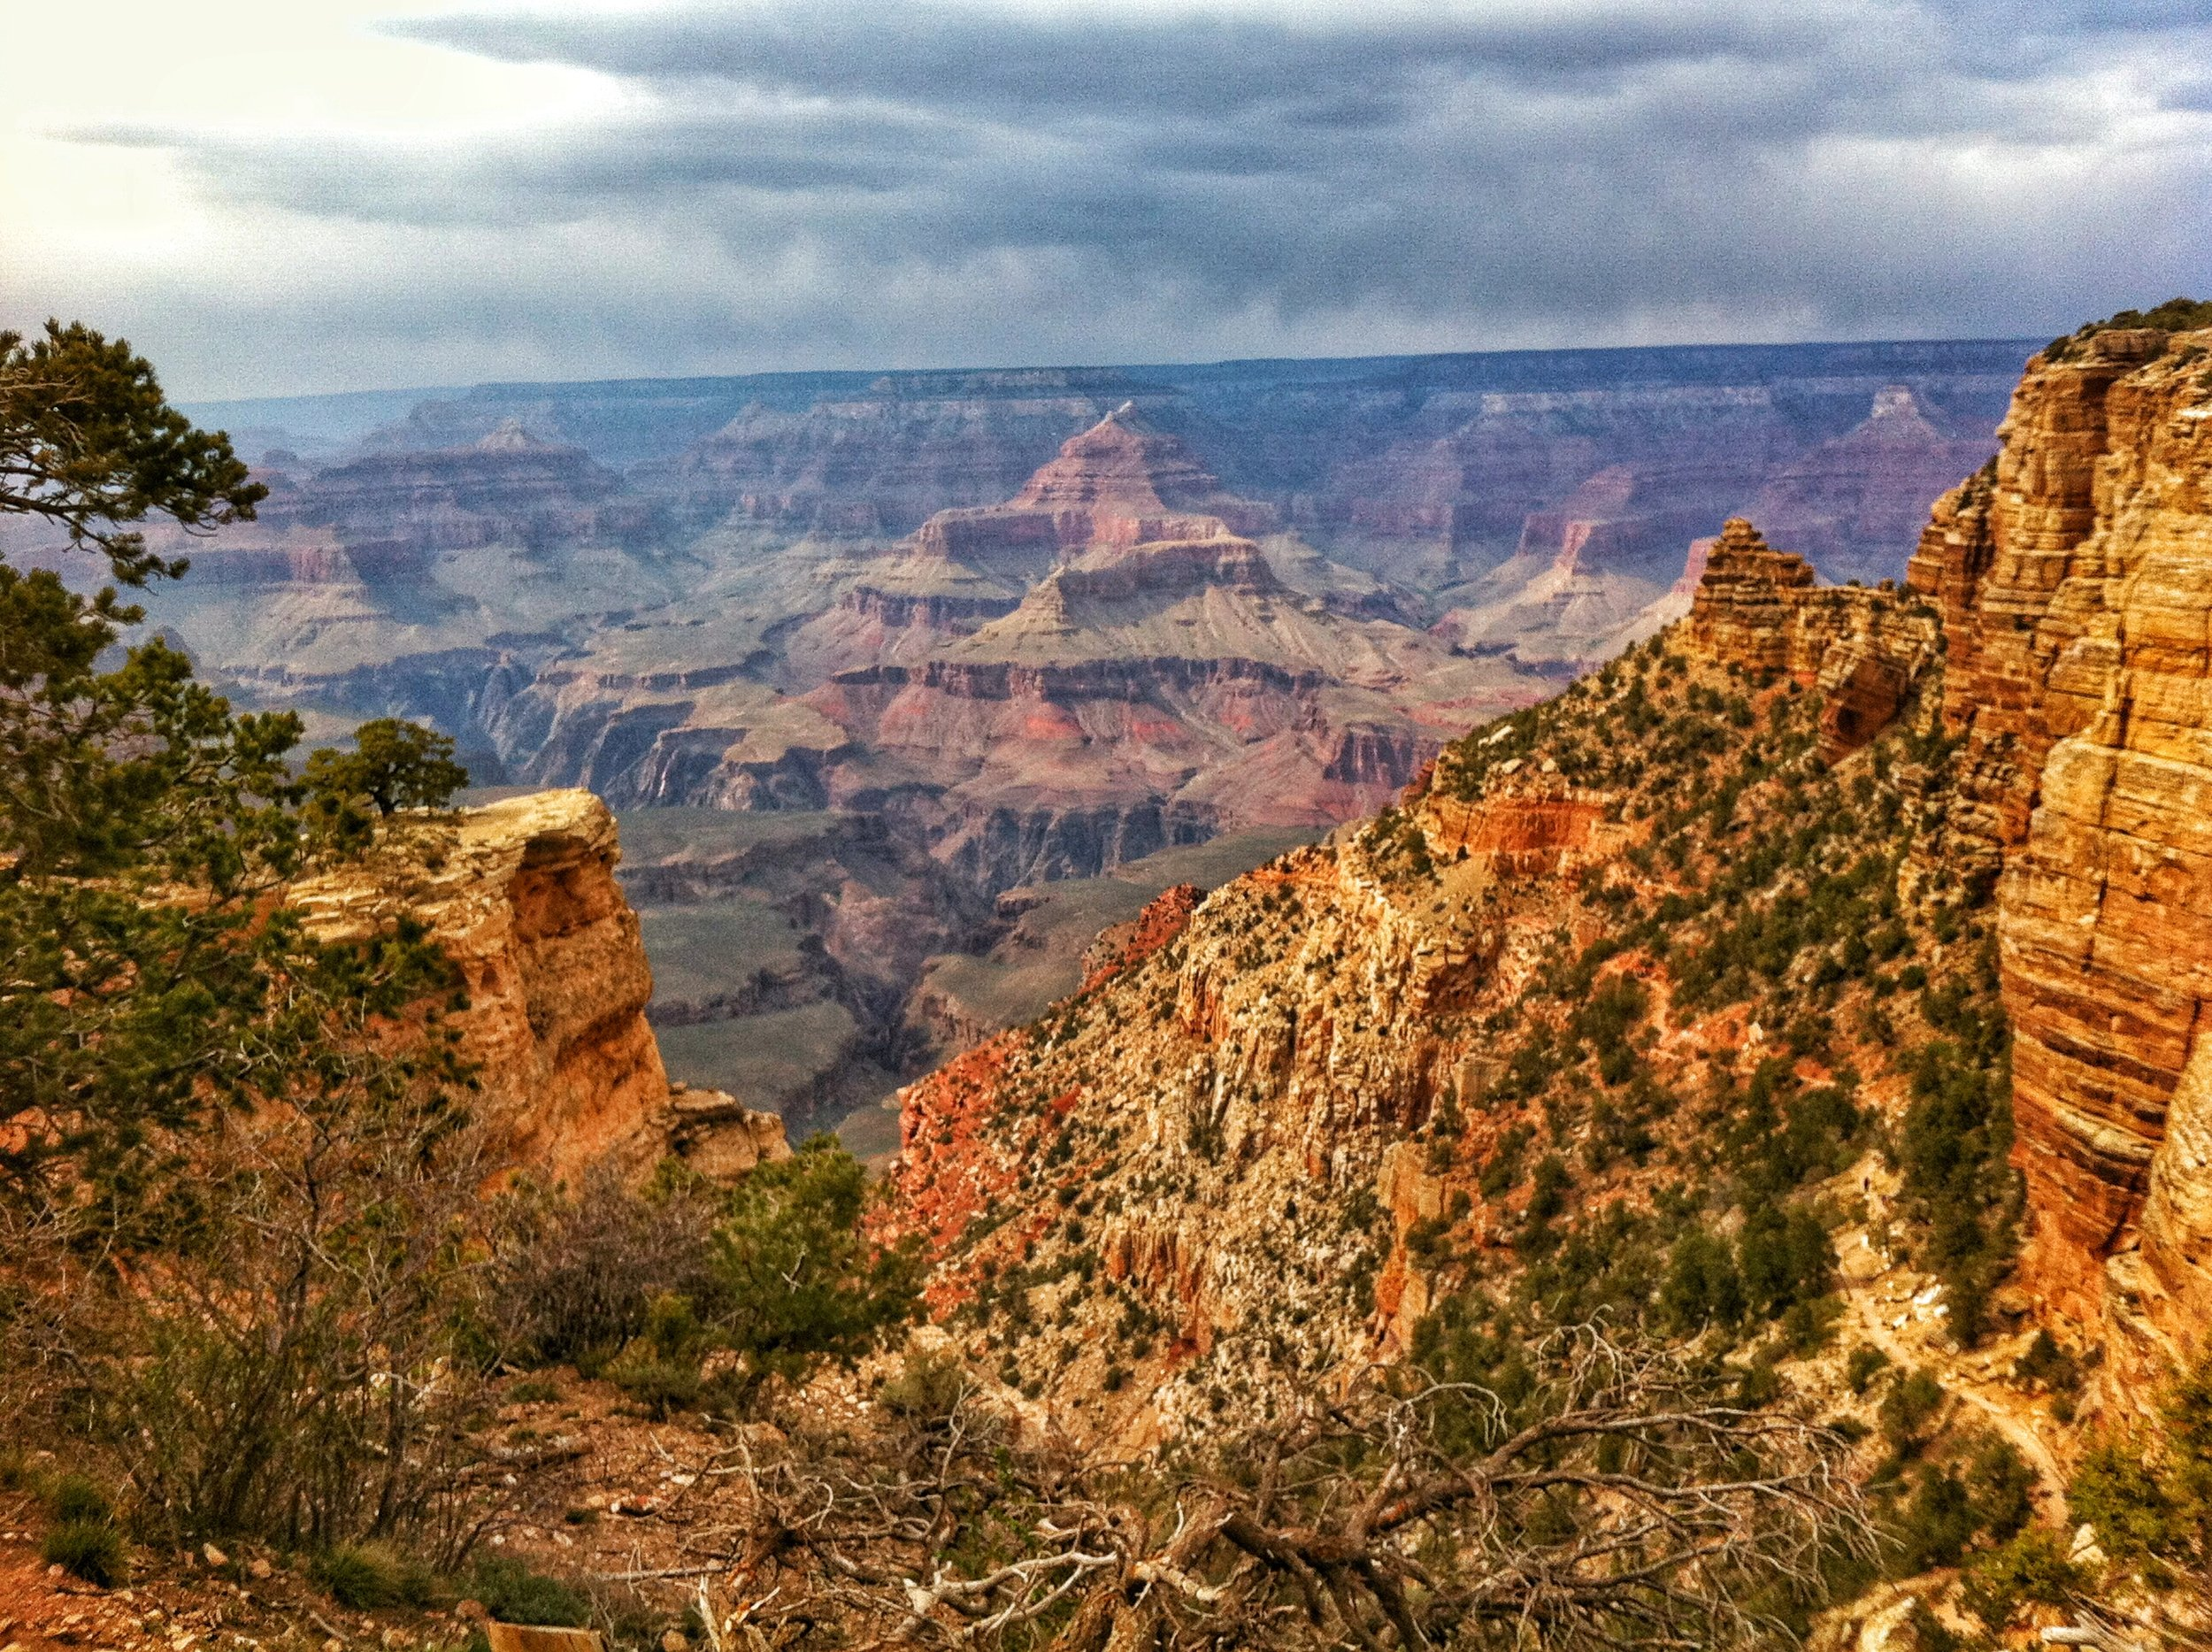 While there's not a bad view at the Grand Canyon, things only get better when on the trail.